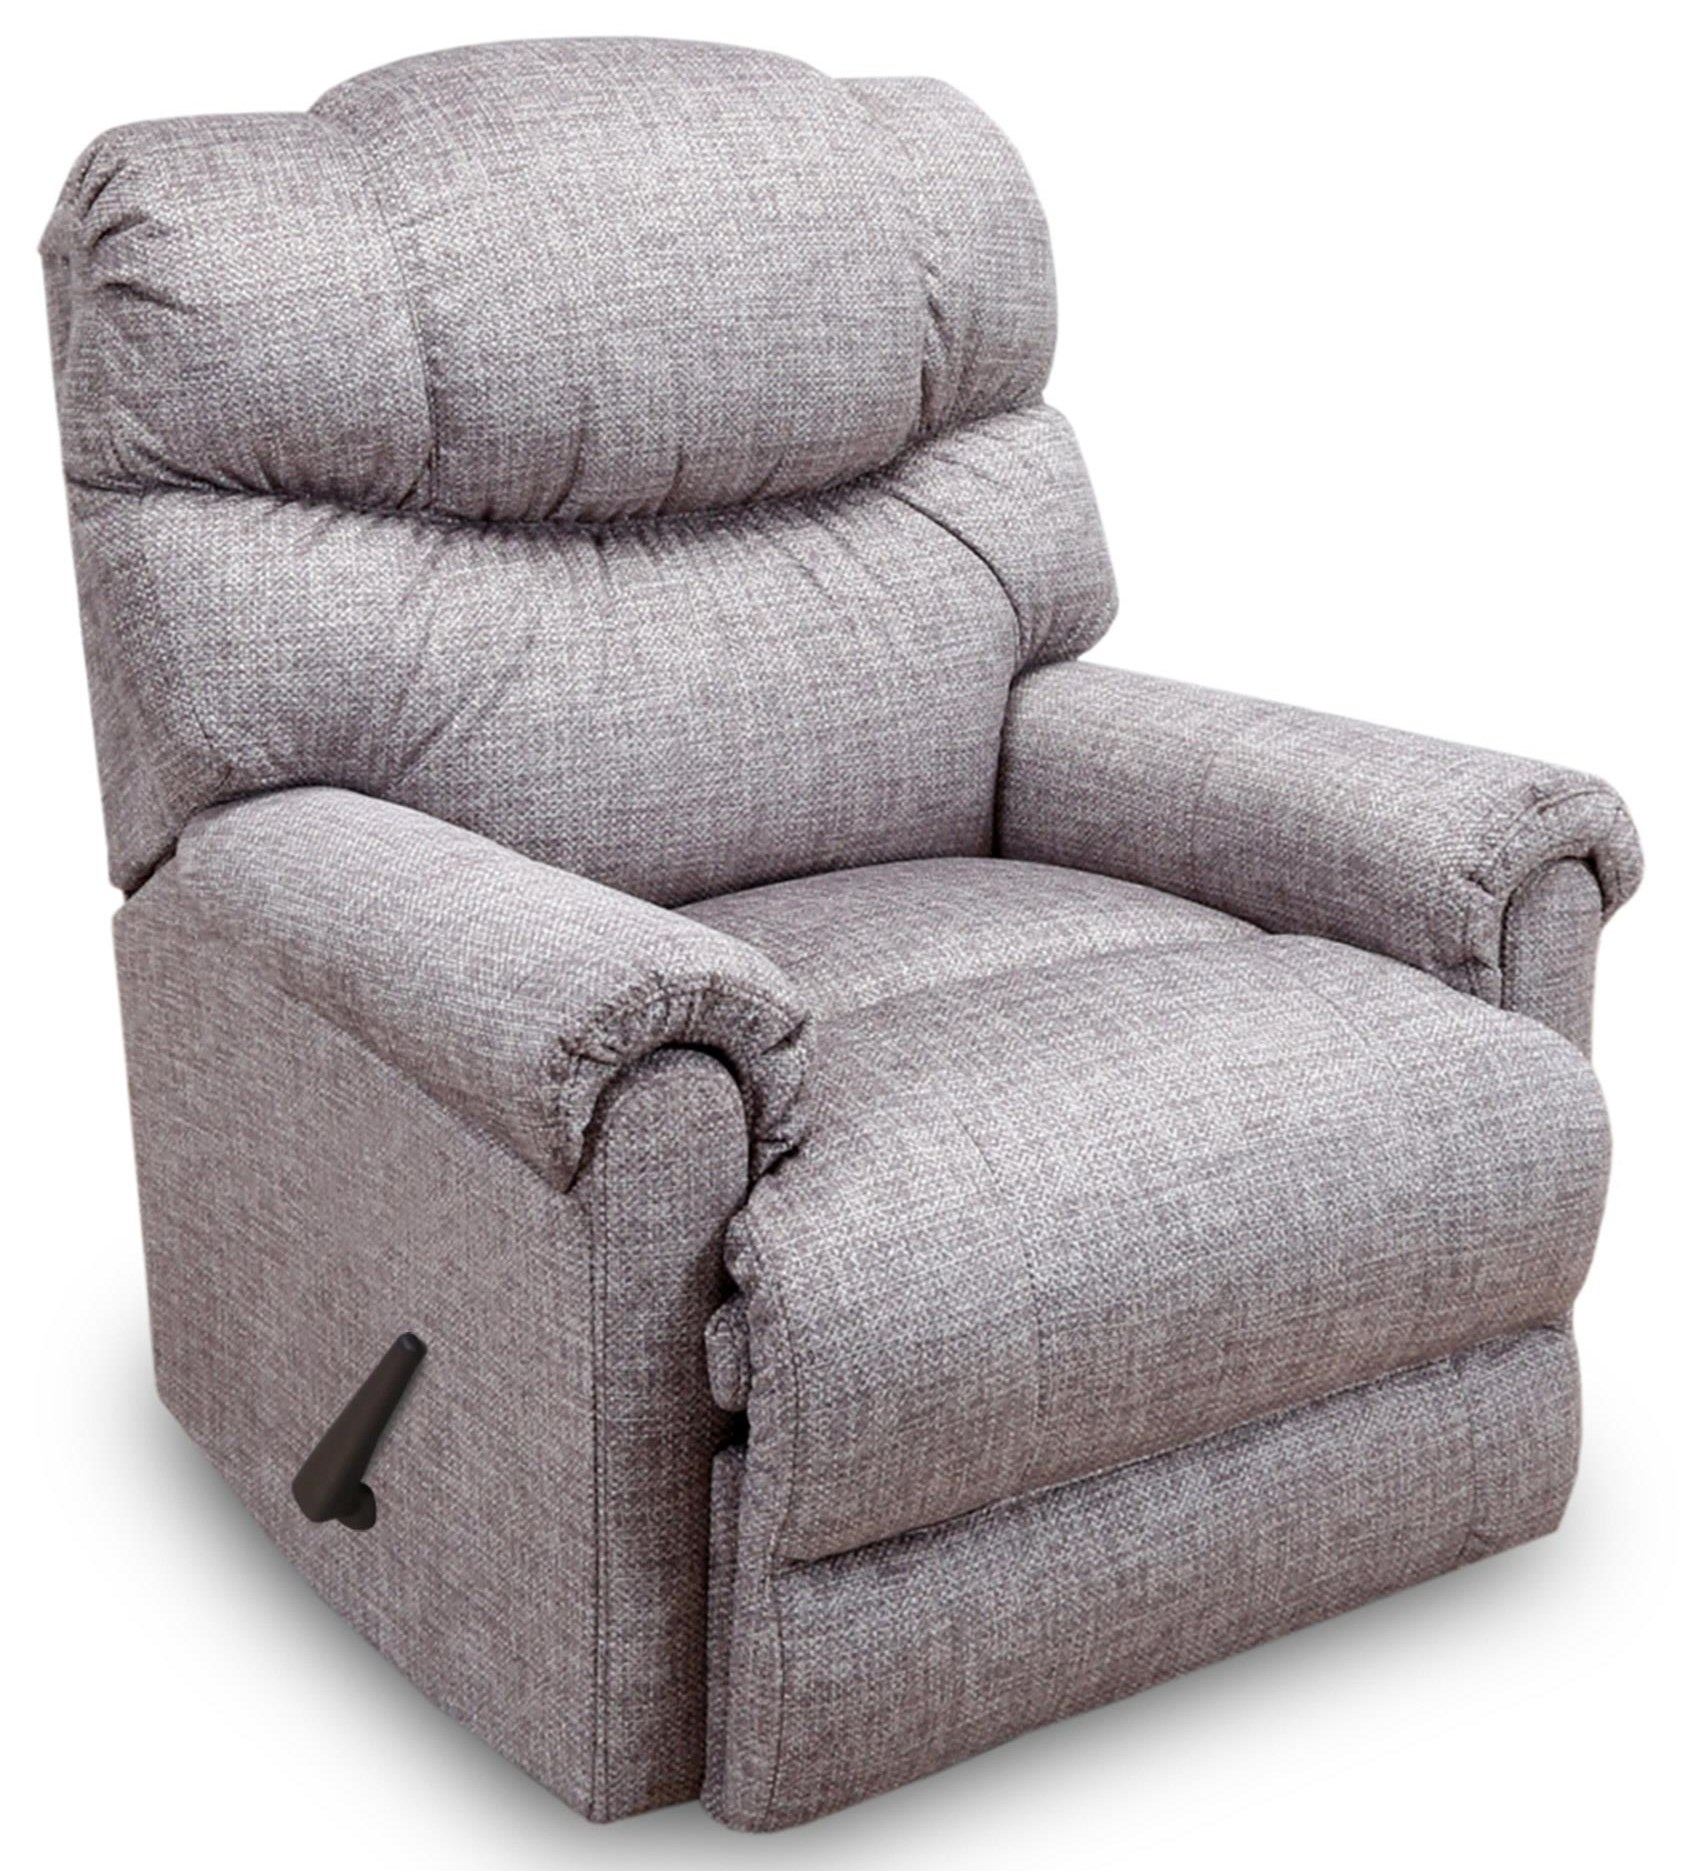 Franklin Recliners Handle Rocker Recliner - Item Number: 4524 1725-25